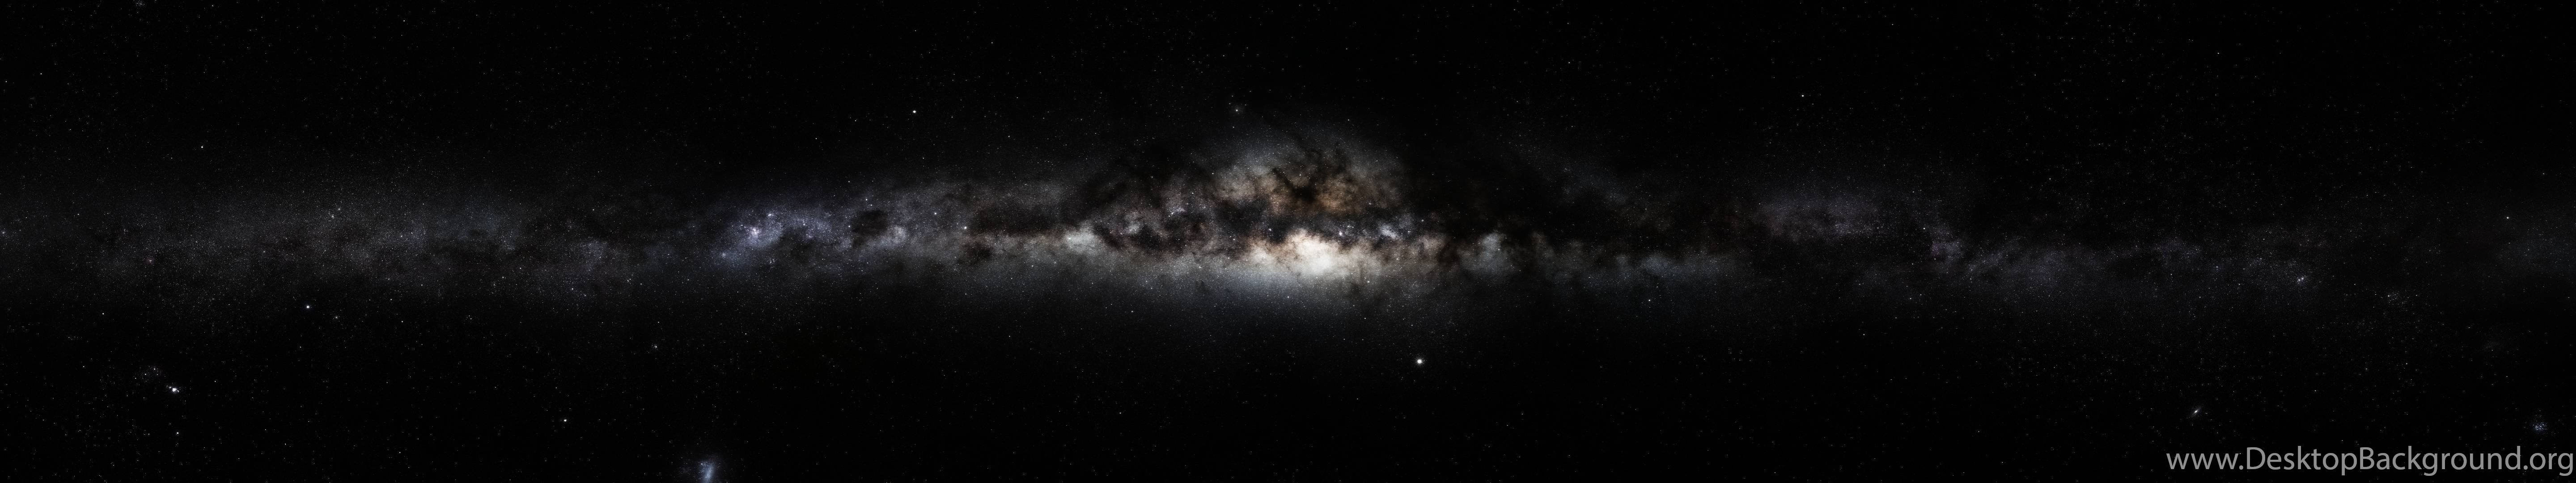 Space 5760X1080 Wallpapers - Top Free Space 5760X1080 Backgrounds -  WallpaperAccess